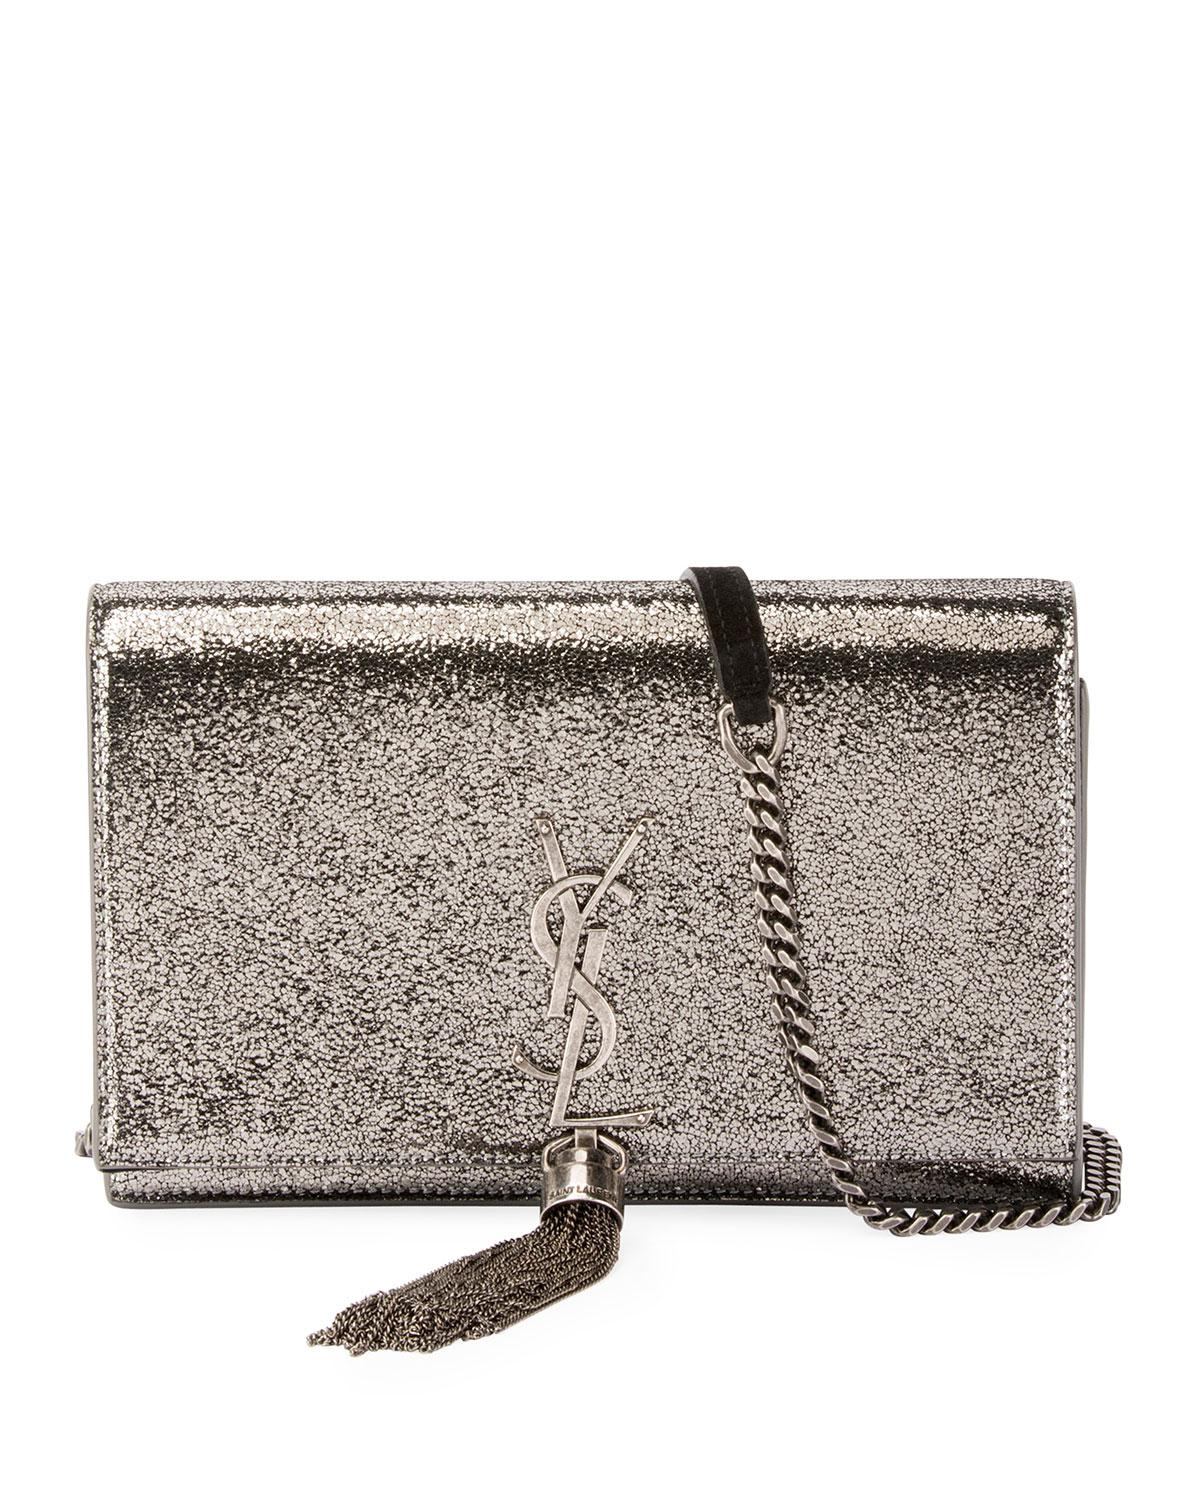 4ca5fccfea3 Saint Laurent. Women s Kate Monogram Ysl Small Crackled Metallic Wallet ...